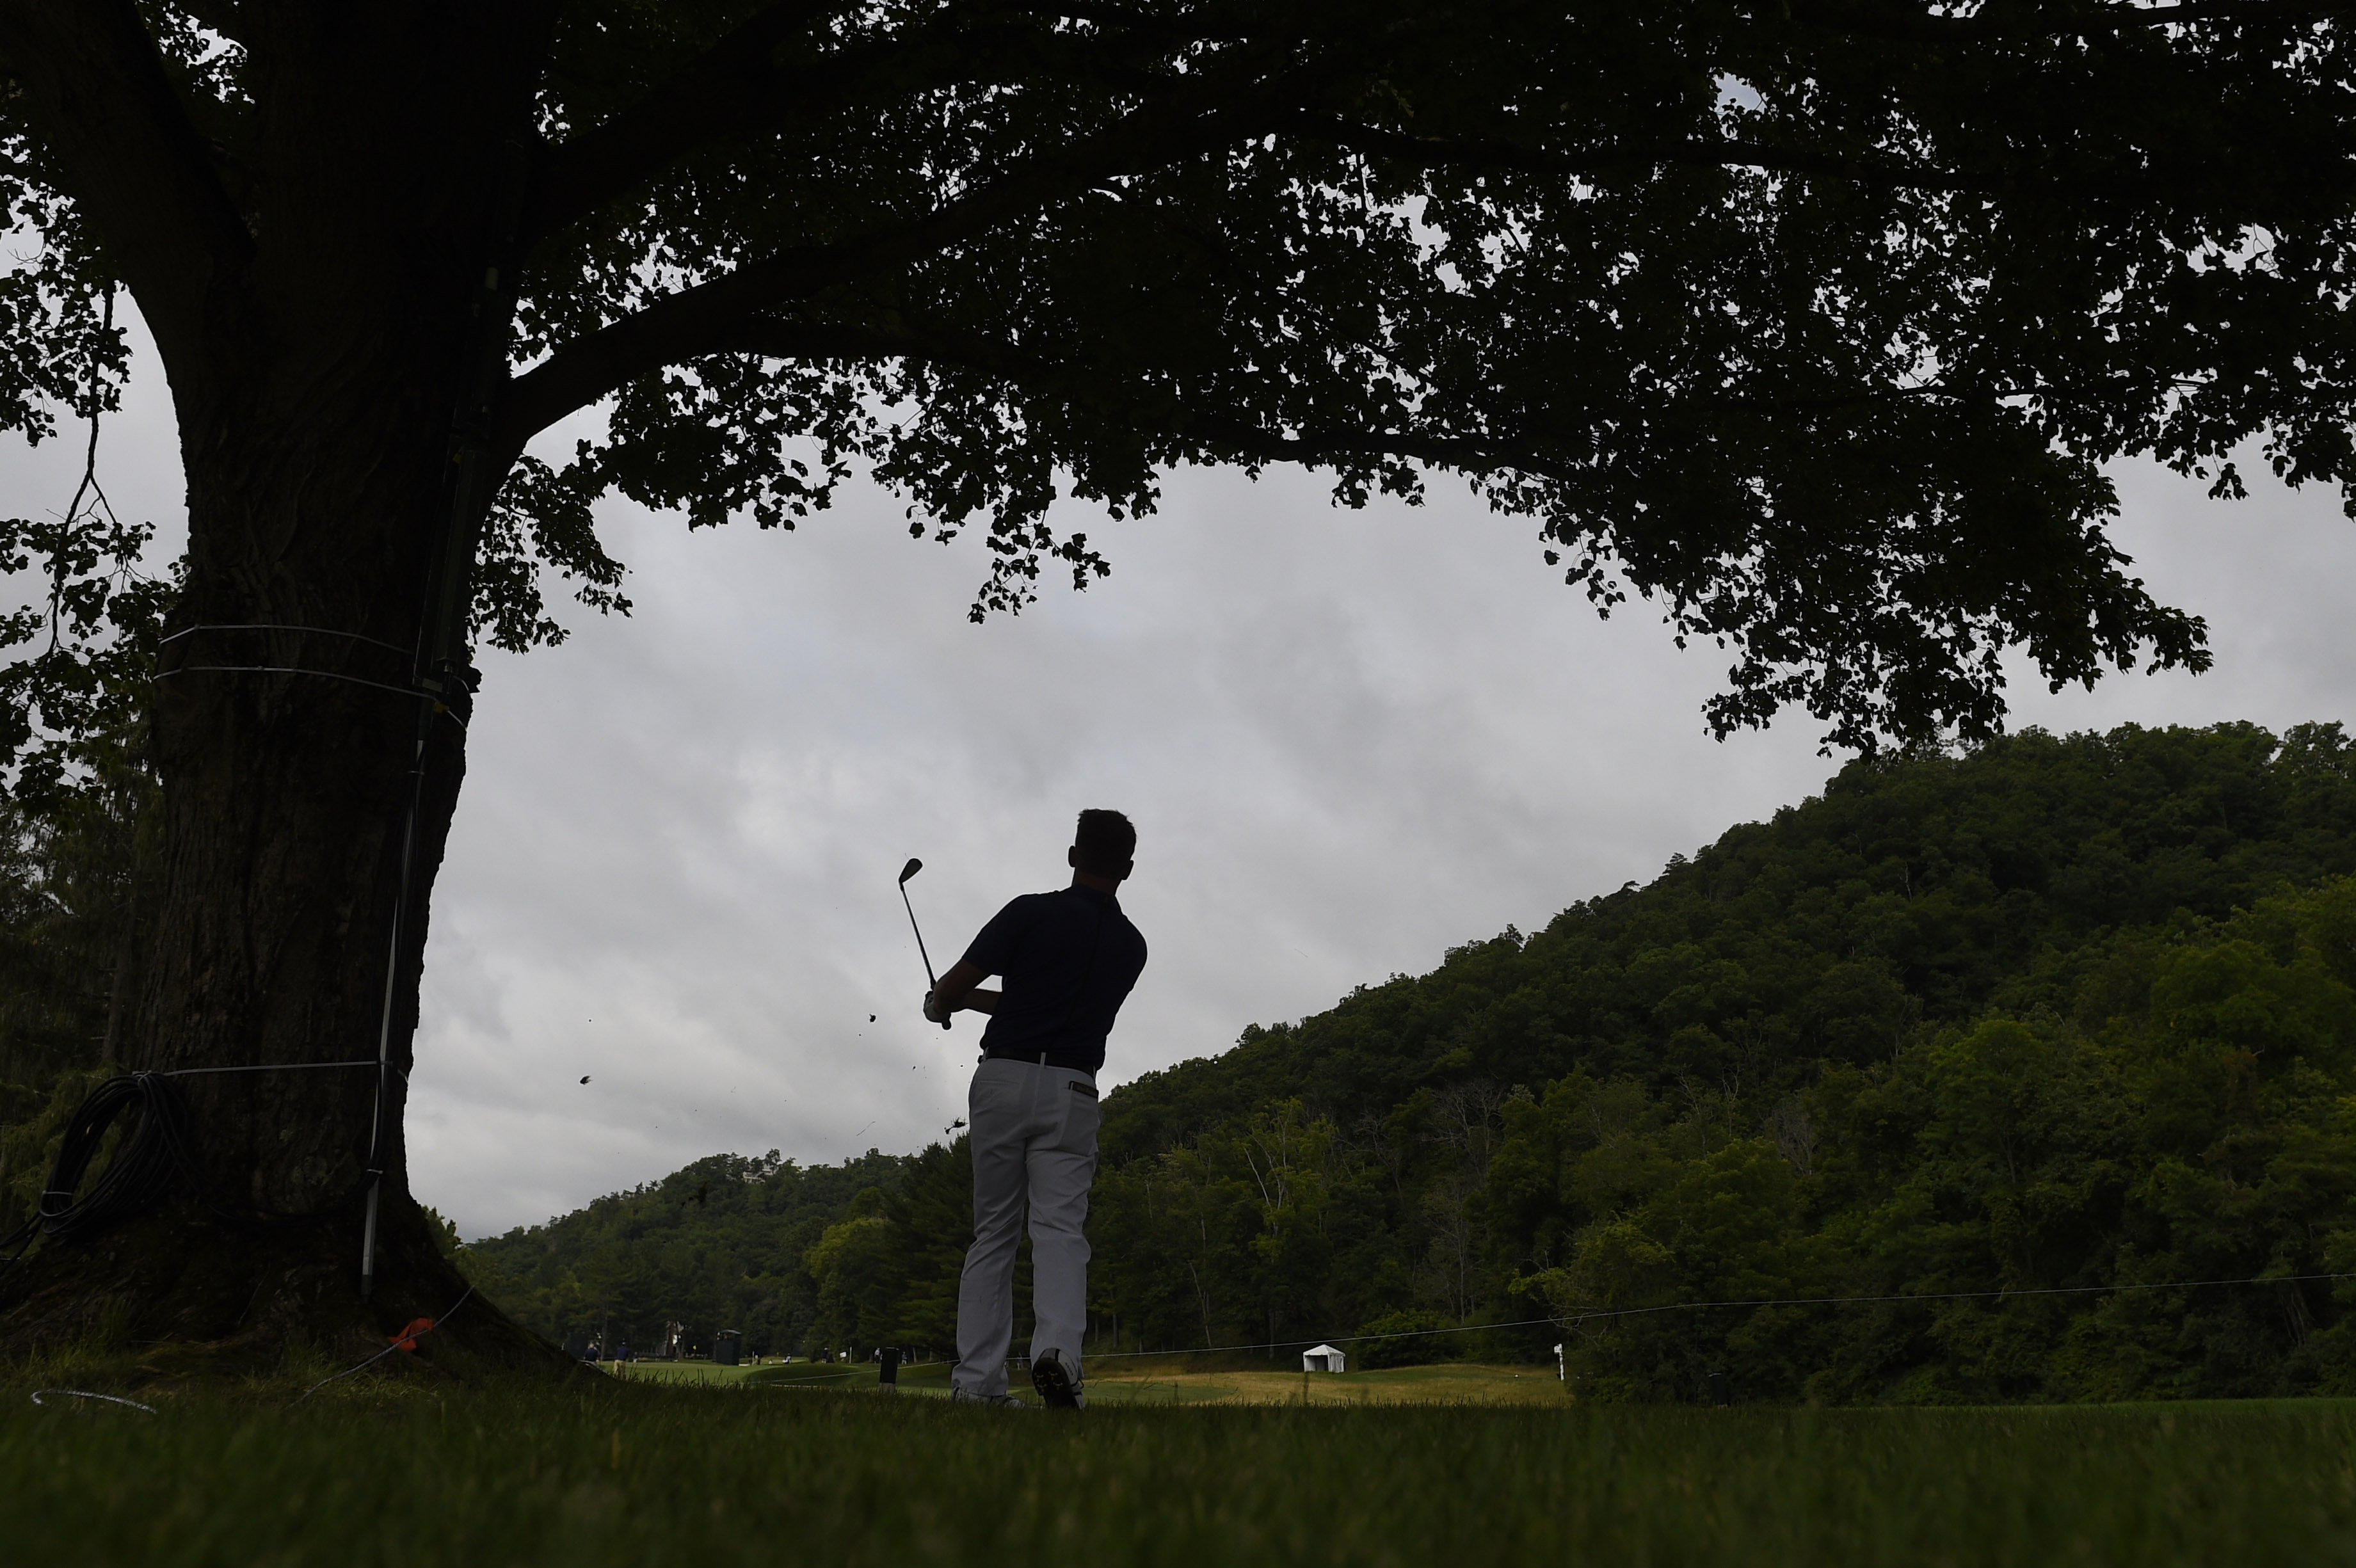 Jul 6, 2017; White Sulphur Springs, WV, USA; Alan Cooke on the 12th fairway during the first round of The Greenbrier Classic golf tournament at The Old White TPC. Mandatory Credit: Bob Donnan-USA TODAY Sports